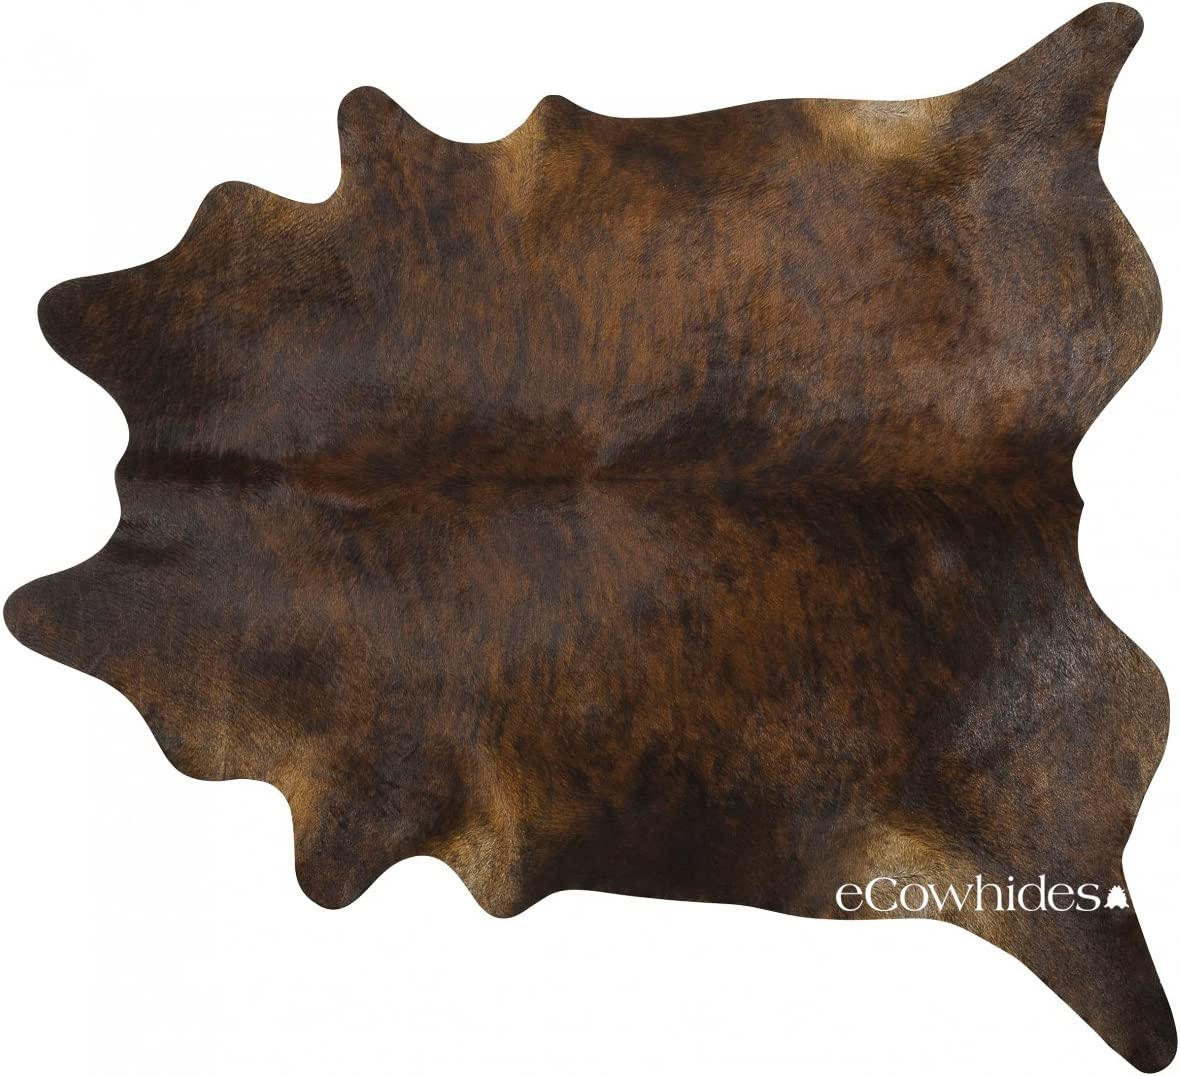 eCowhides Dark Brindle Brazilian Cowhide Area Rug, Cowskin Leather Hide for Home Living Room Large 6 x 6 ft